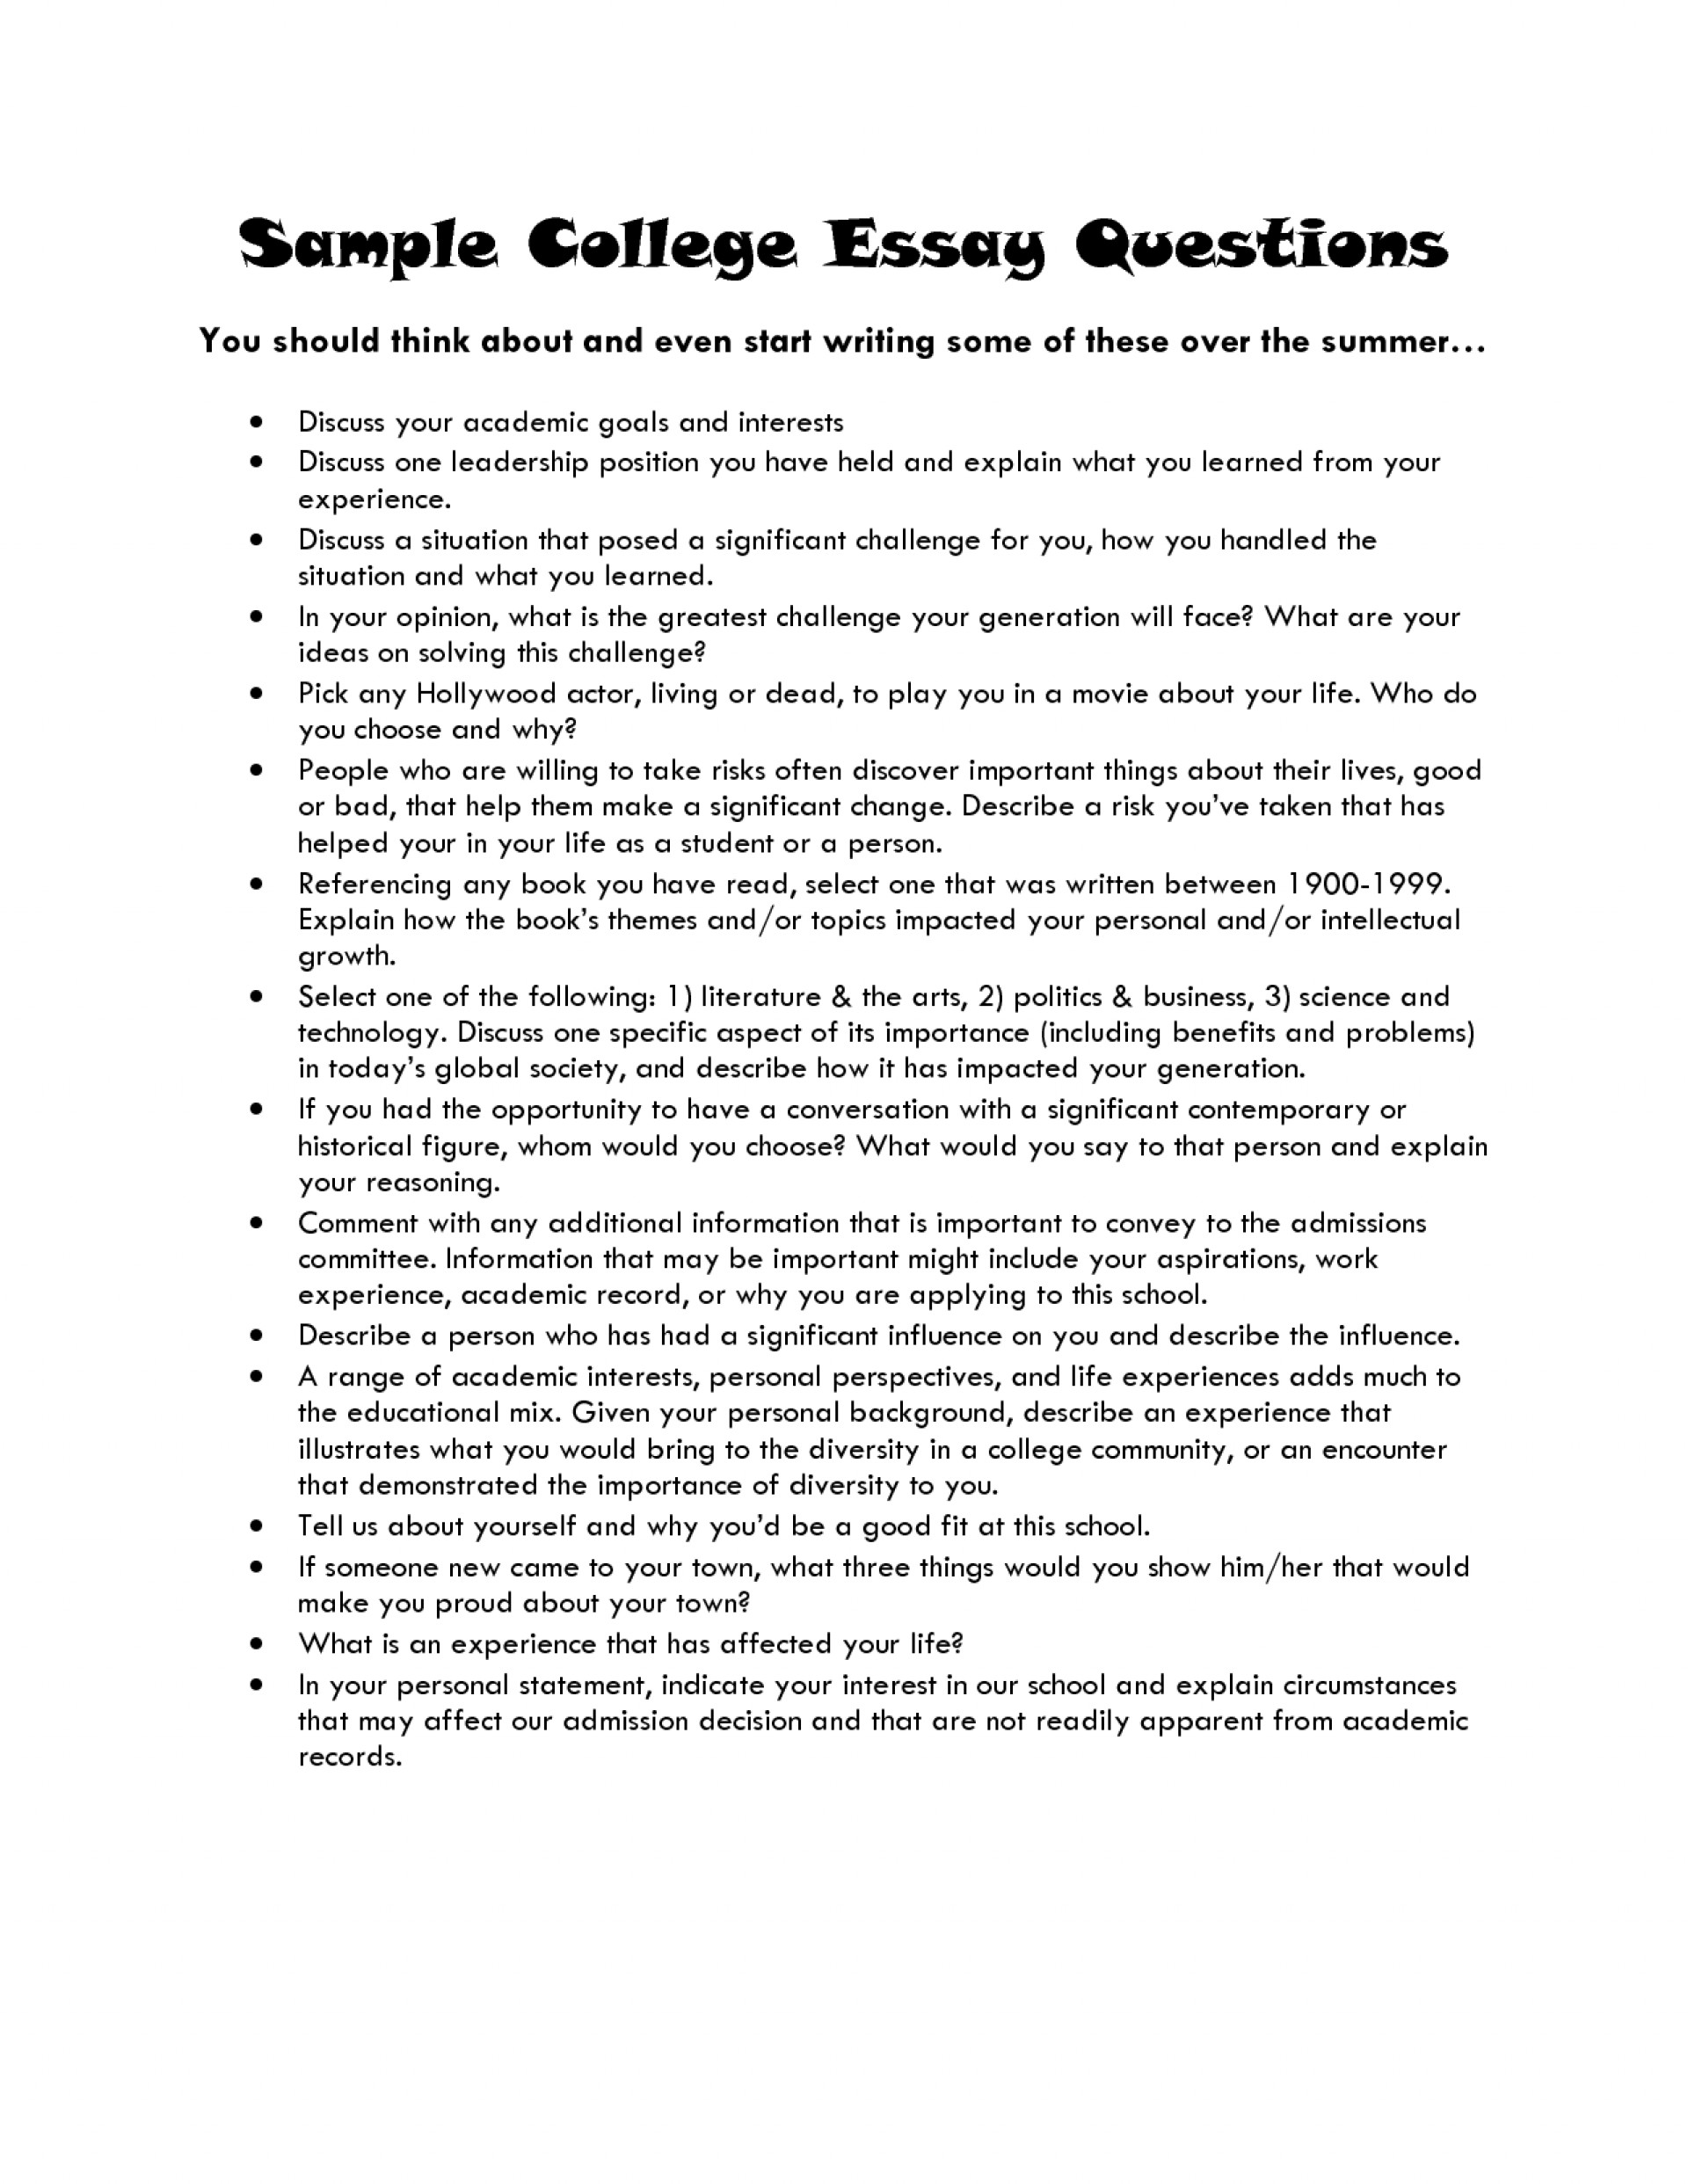 005 College Essay Topics Academic Goals Sample Questions L Top A B And C Argumentative Common To Avoid 1920